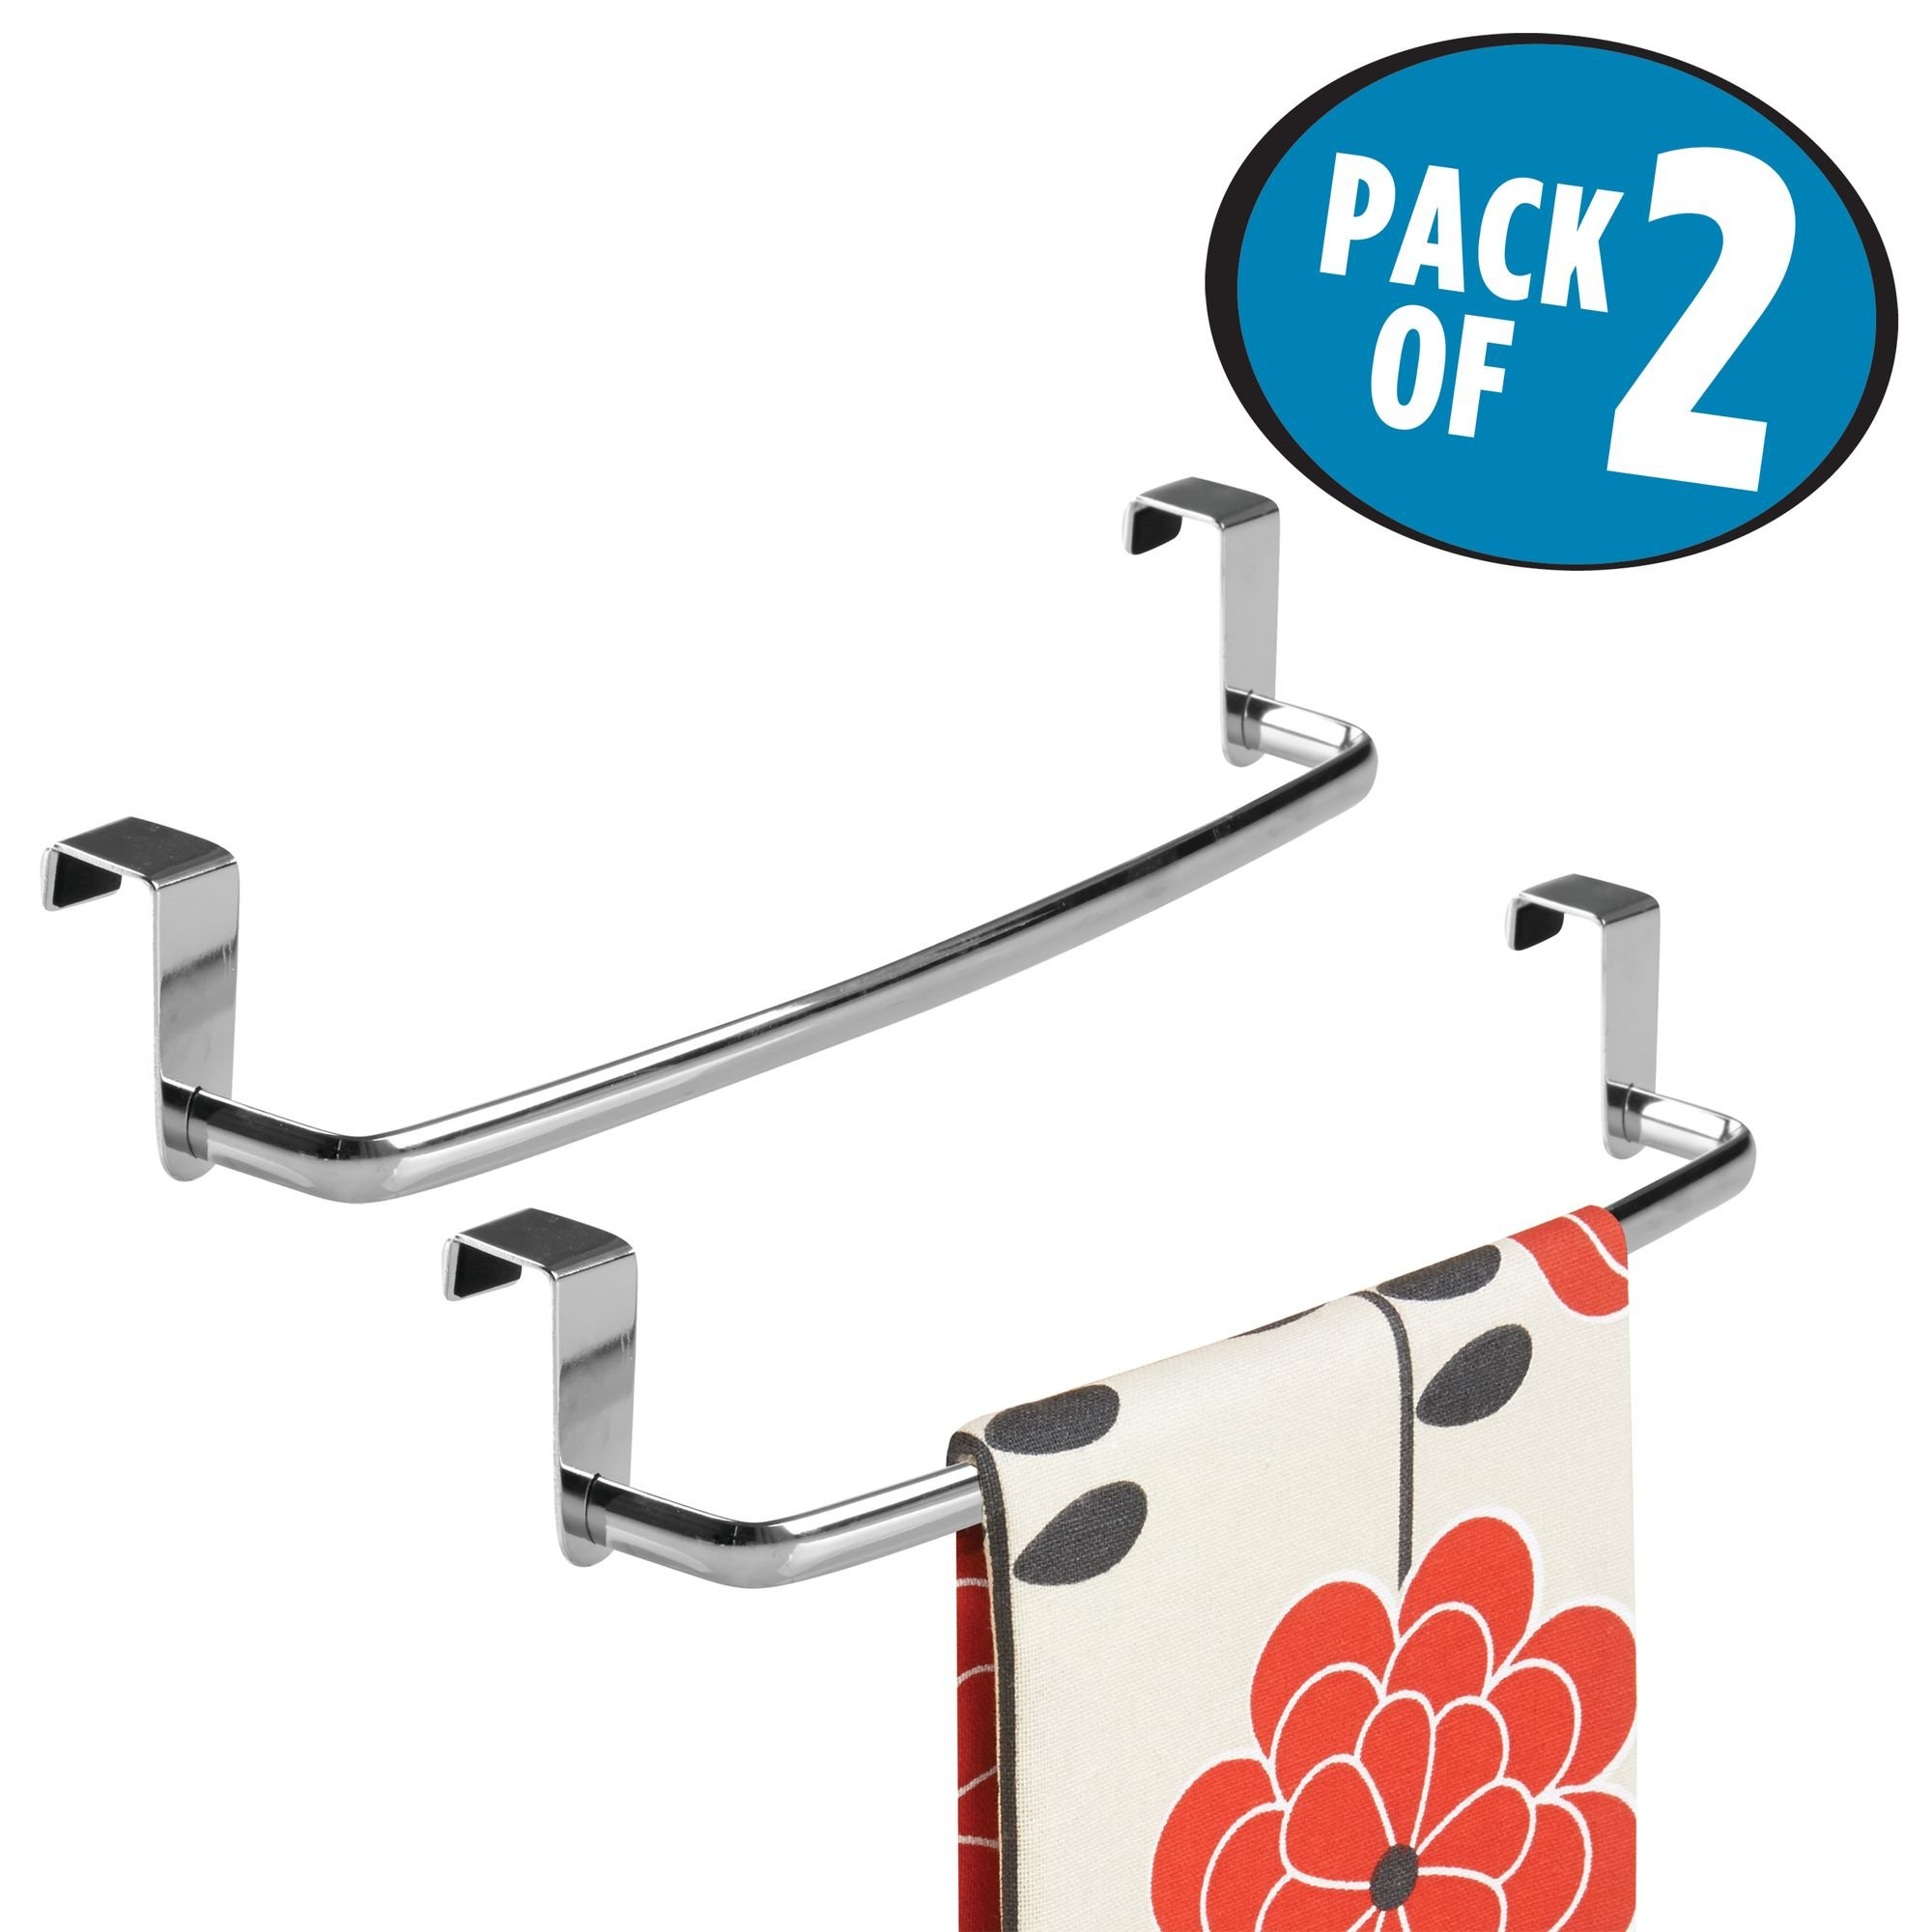 mDesign Kitchen Storage Over Cabinet Curved Steel Towel Bar - Hang on Inside or Outside of Doors, for Organizing and Hanging Hand, Dish, and Tea Towels - 14'' Wide, Pack of 2, Polished Chrome Finish